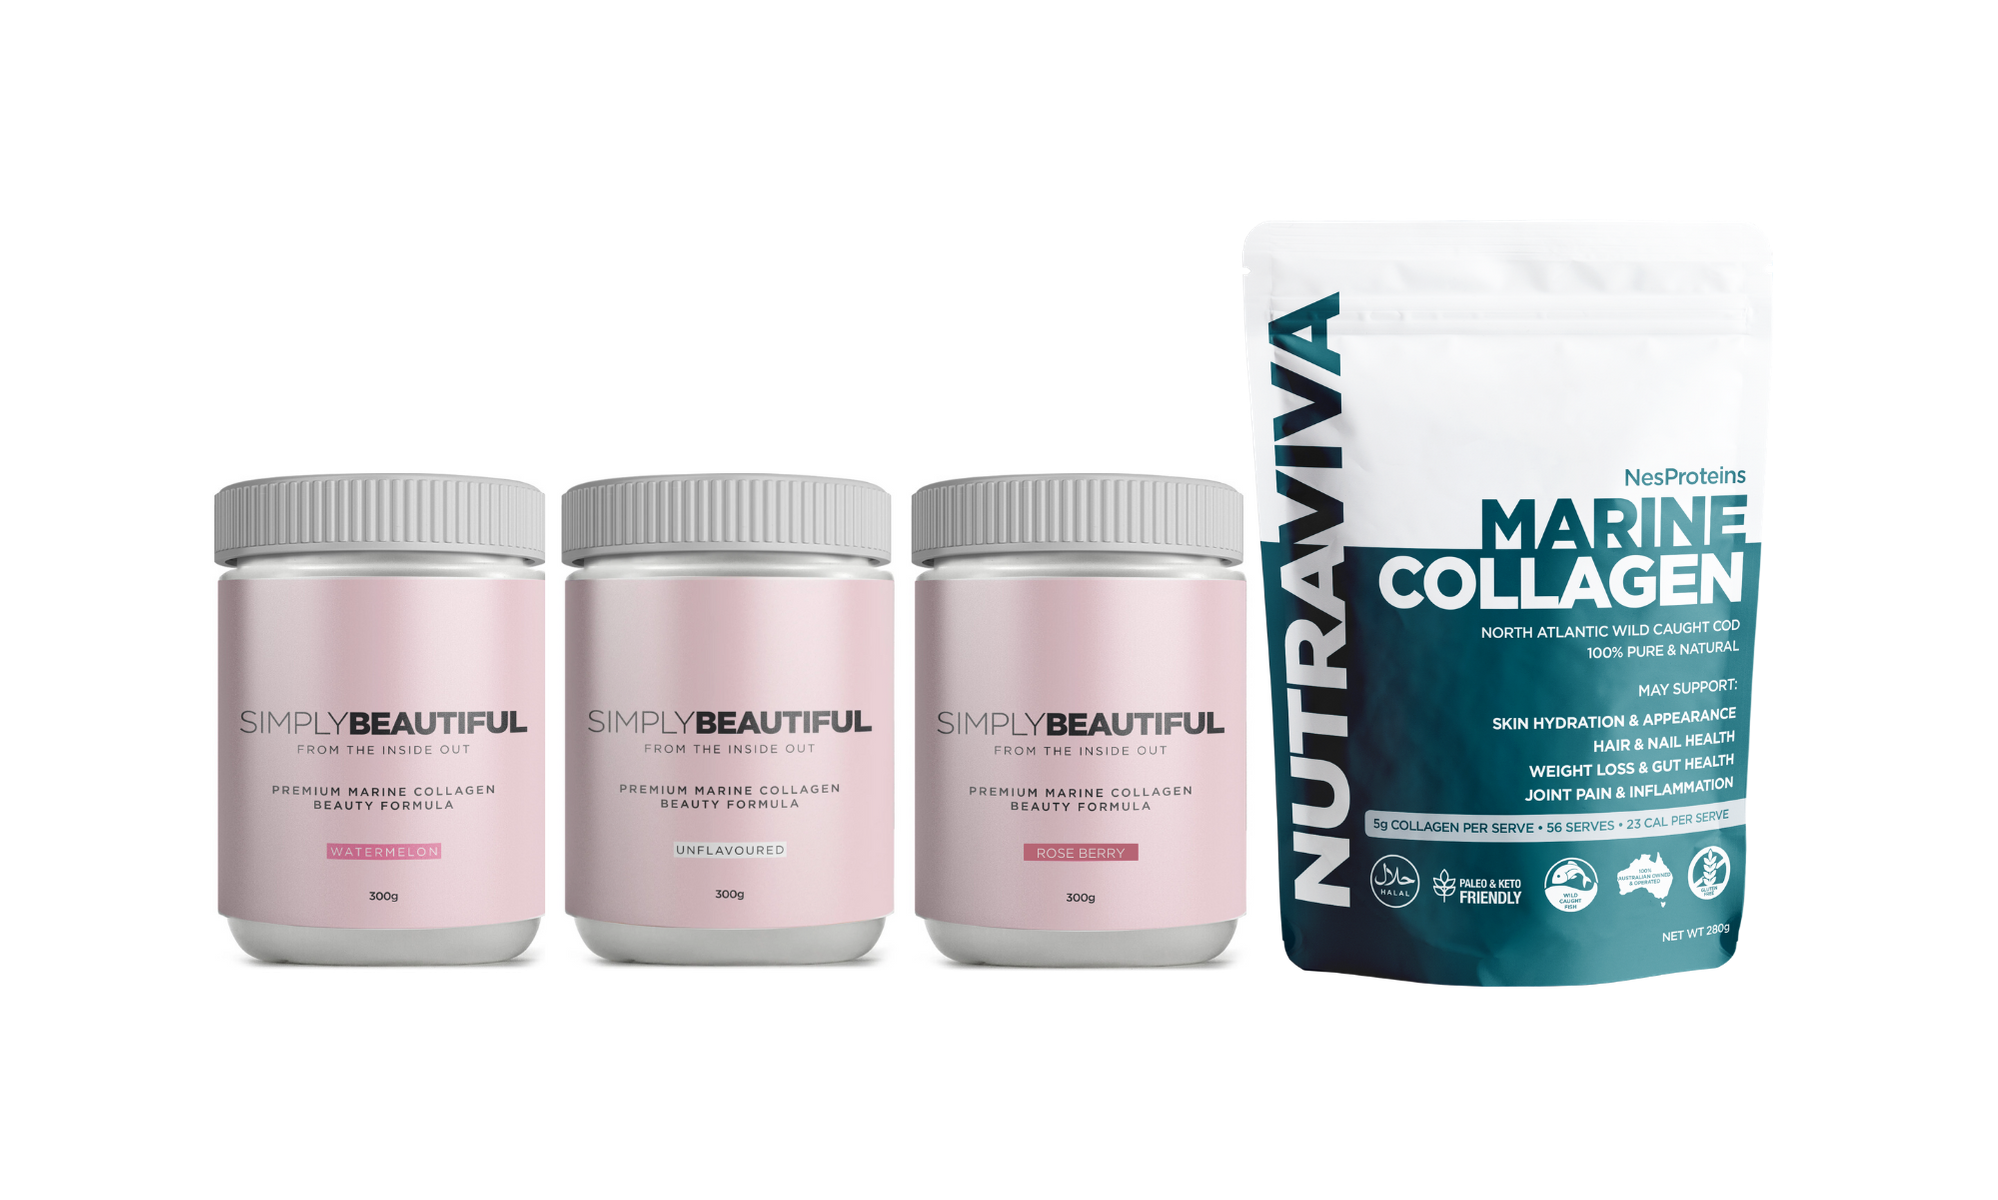 Collagen for beauty